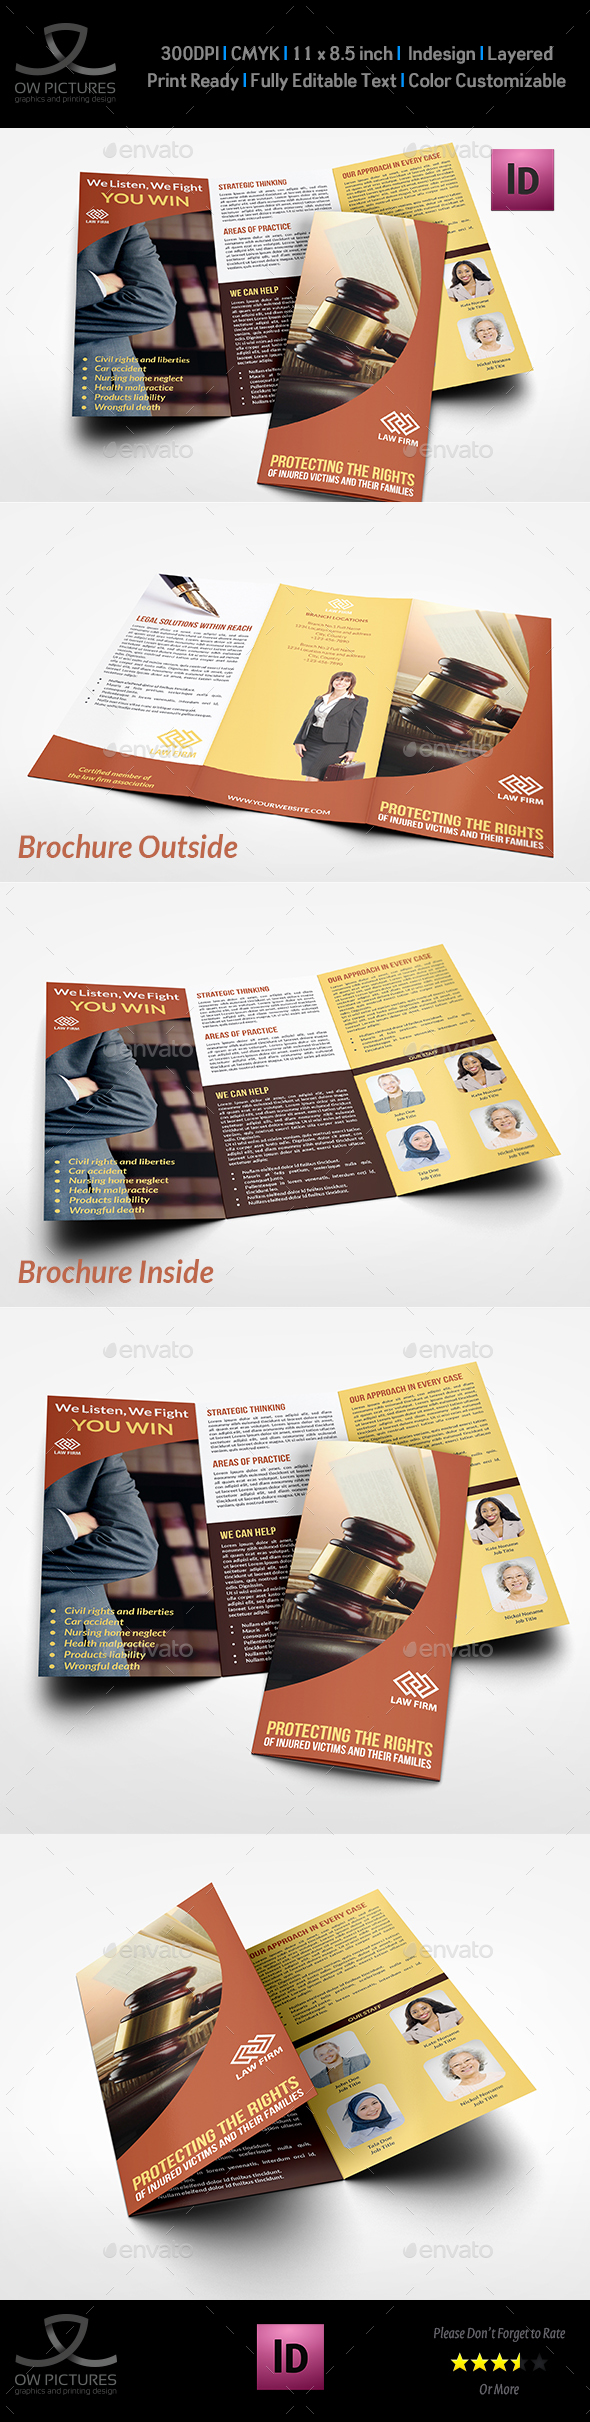 Law Firm Tri Fold Brochure Template By OWPictures GraphicRiver - Law firm brochure template